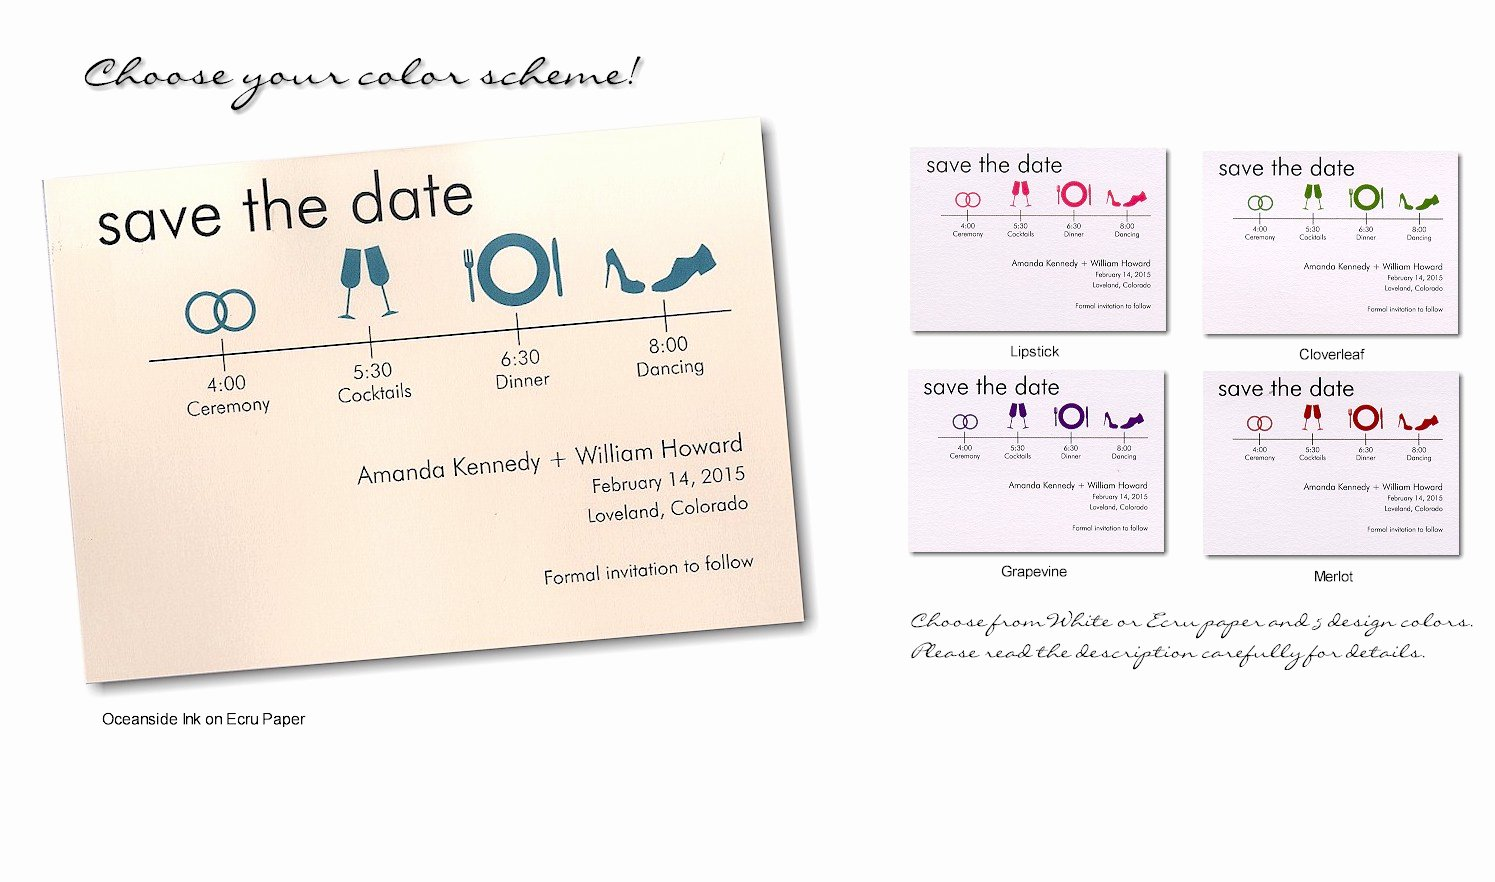 Postcards Save the Date Template Awesome Save the Date Cards Templates for Weddings